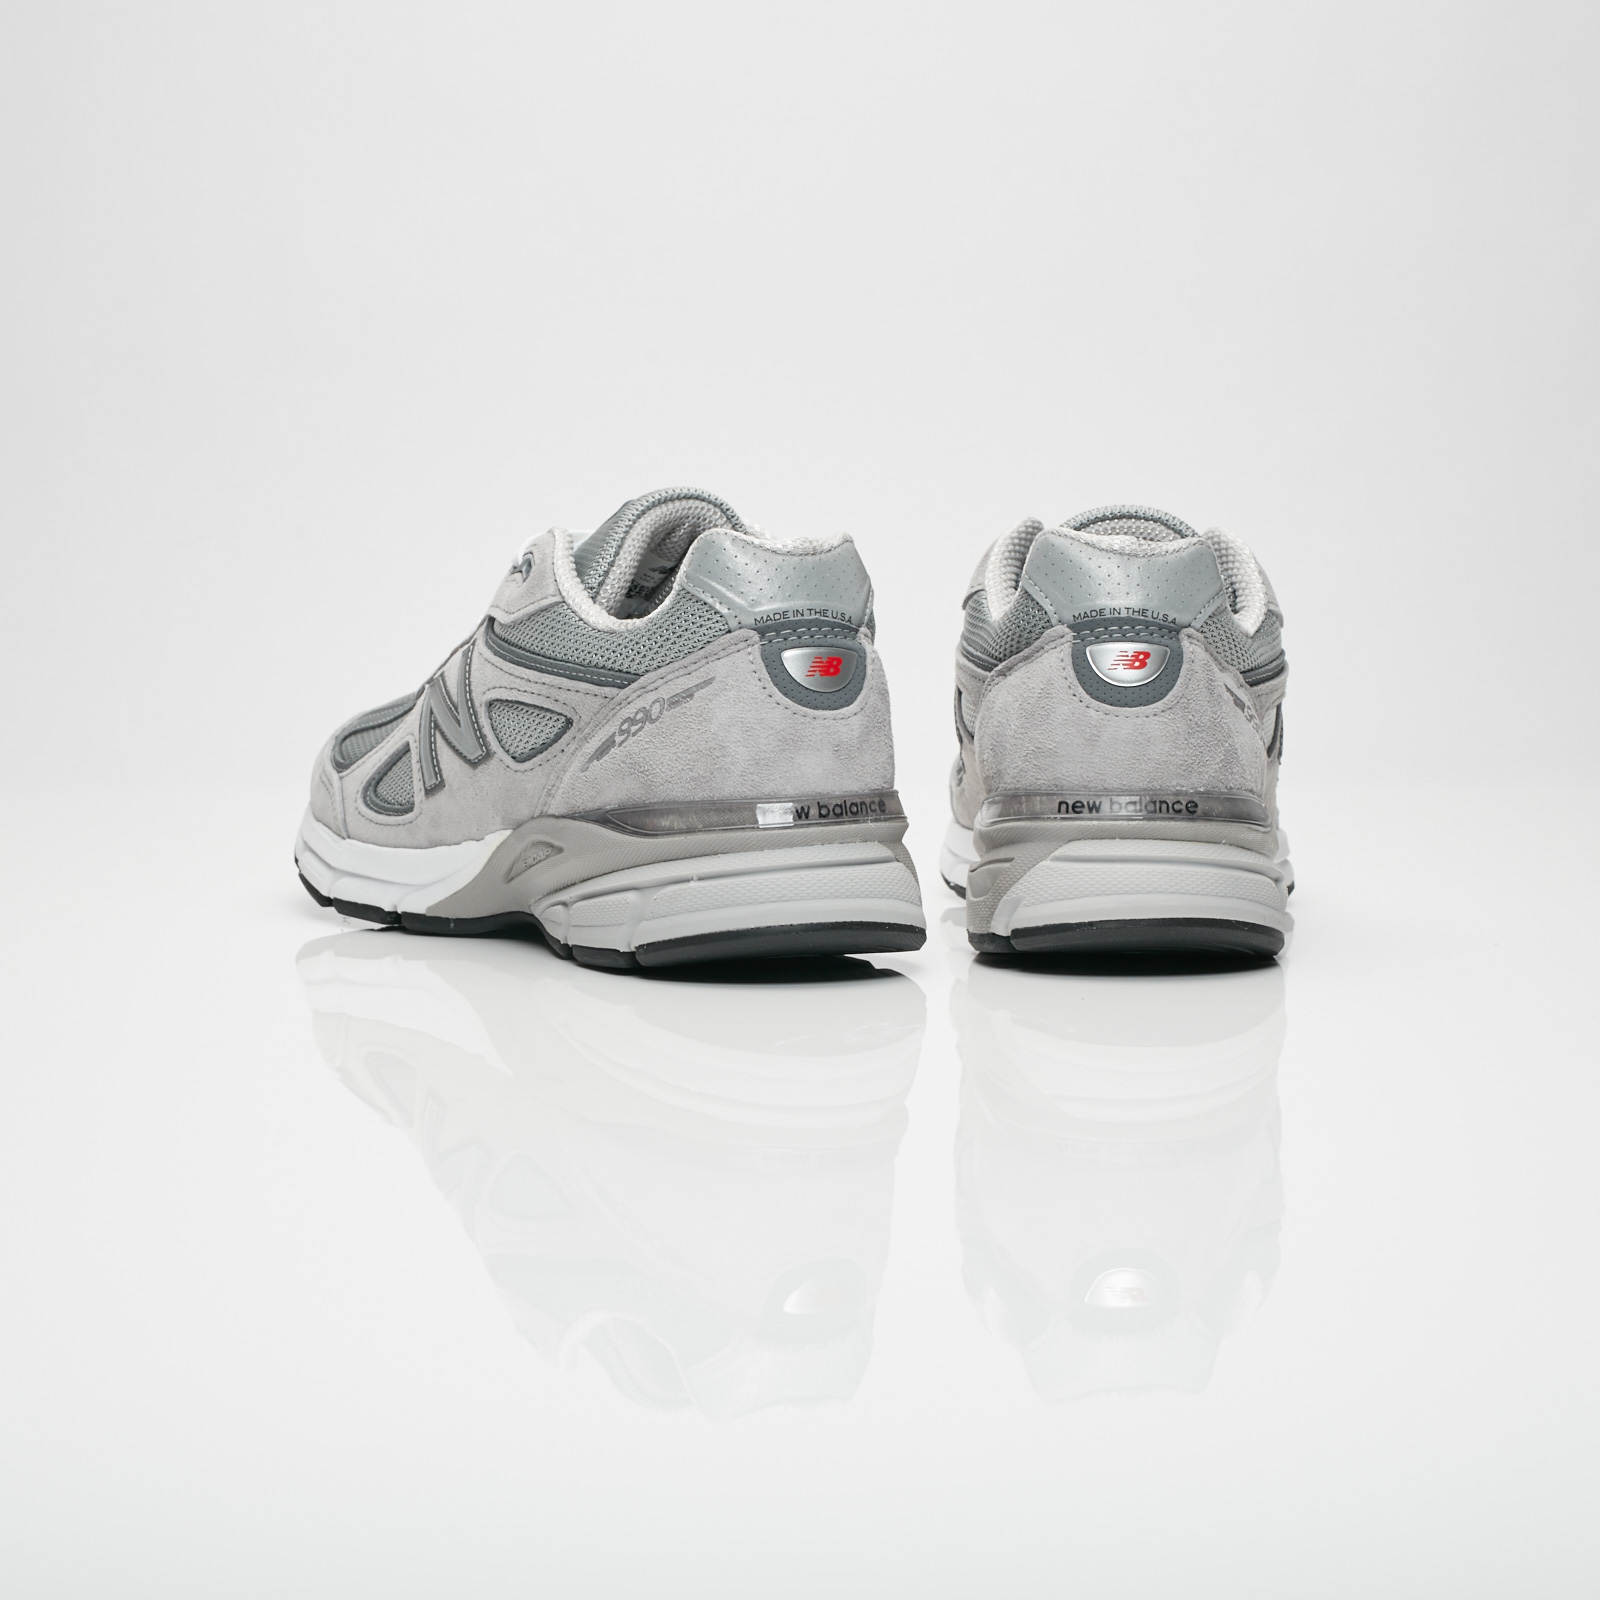 info for 88519 8cdaf New Balance M990GL4 - M990gl4 - Sneakersnstuff | sneakers ...